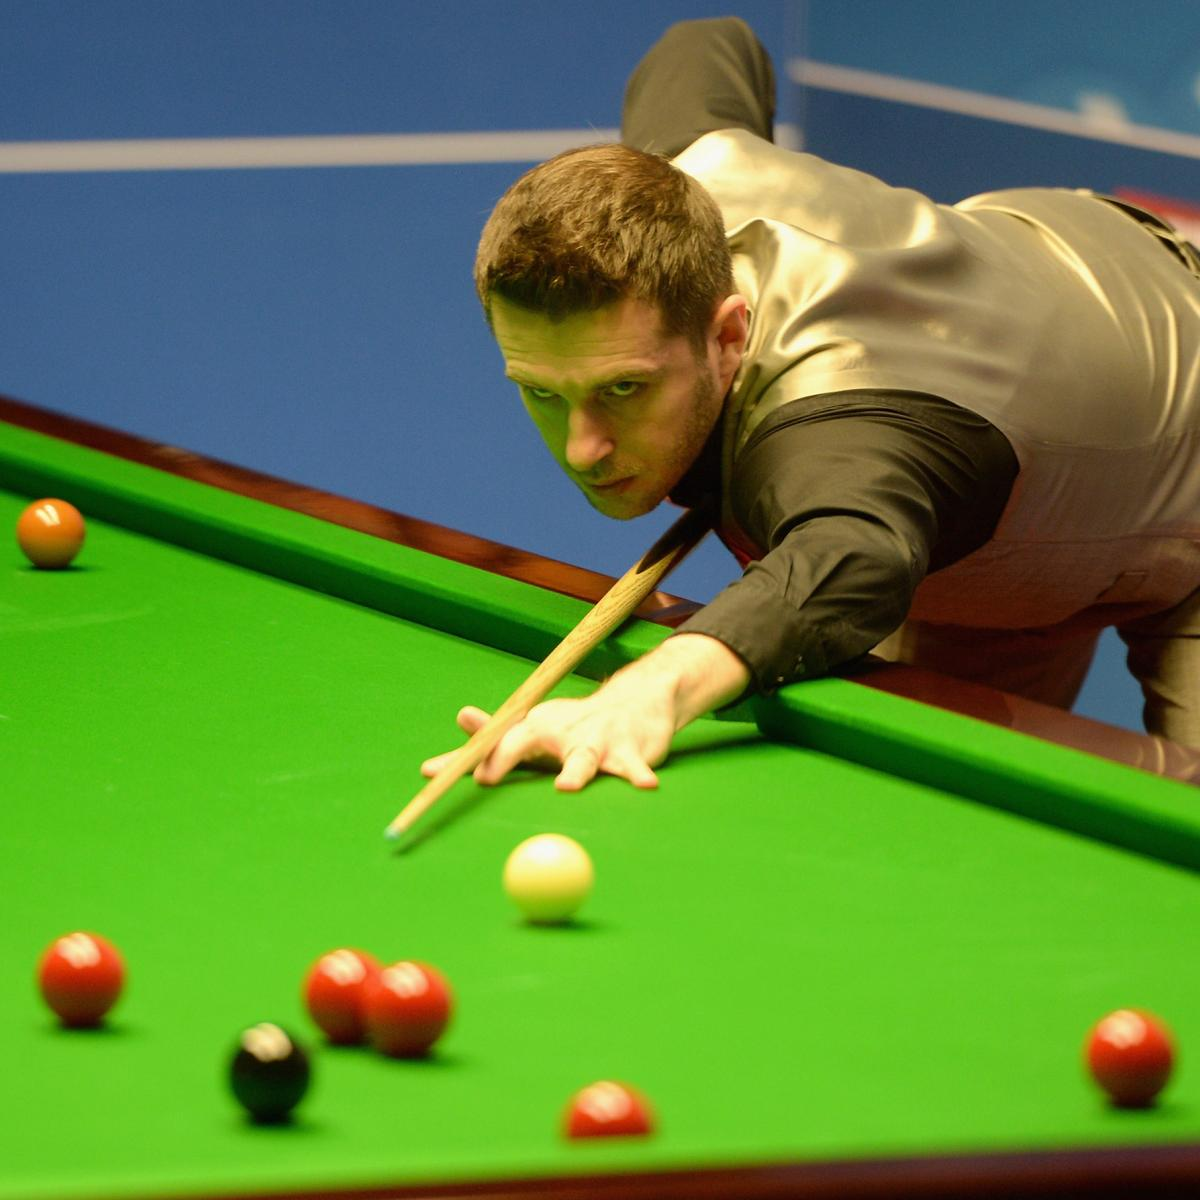 World Snooker Championship 2016 Results: Latest Schedule